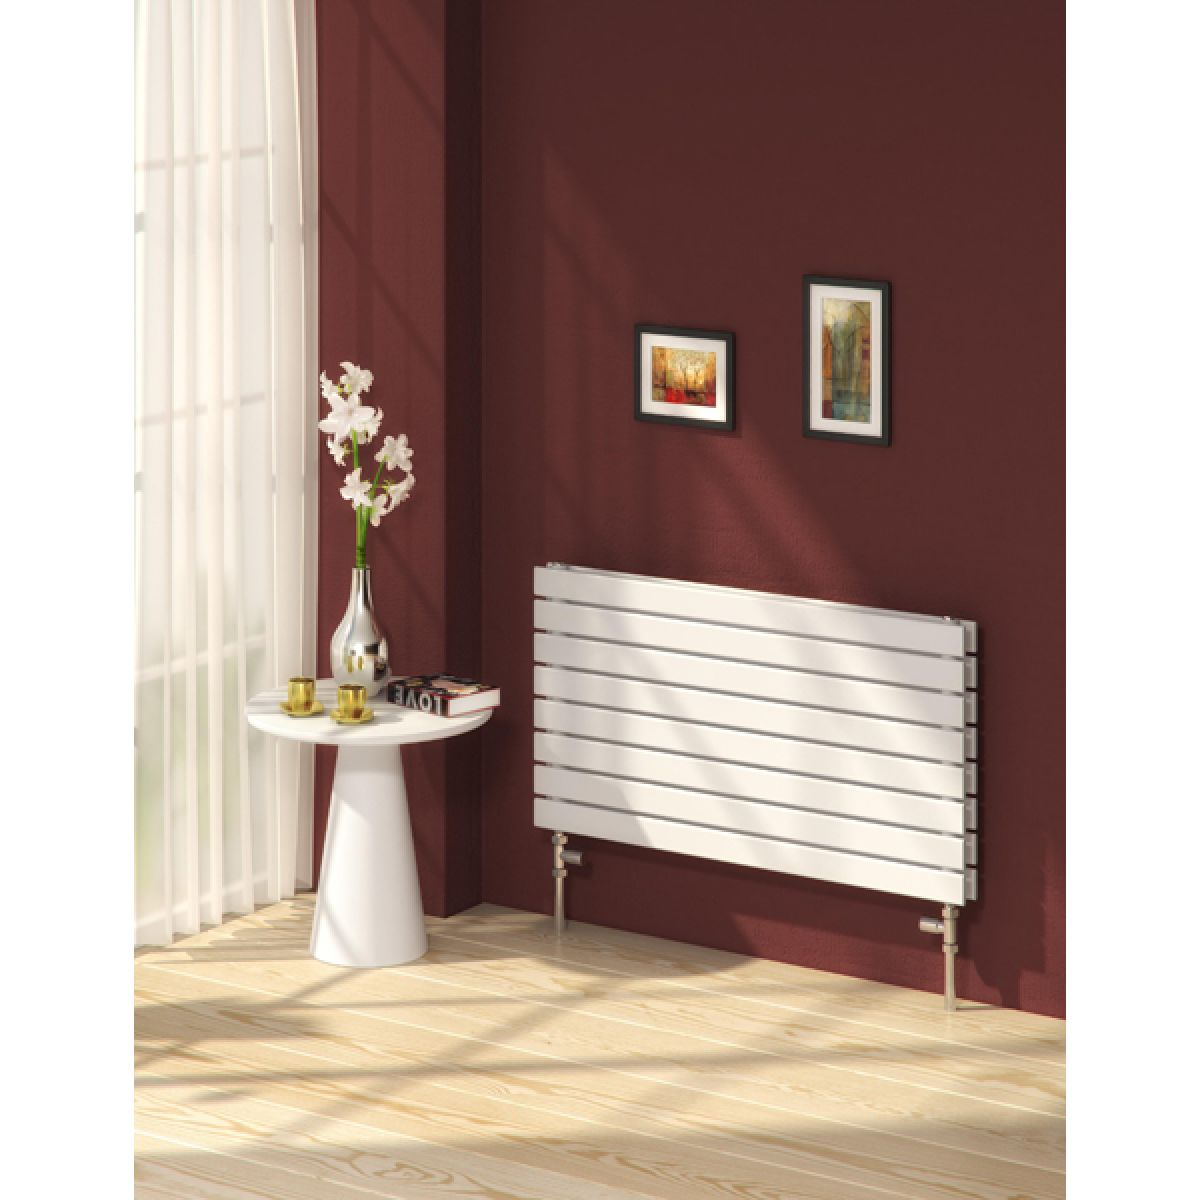 Reina Rione Double Electric Horizontal Radiator 550 x 600mm in White